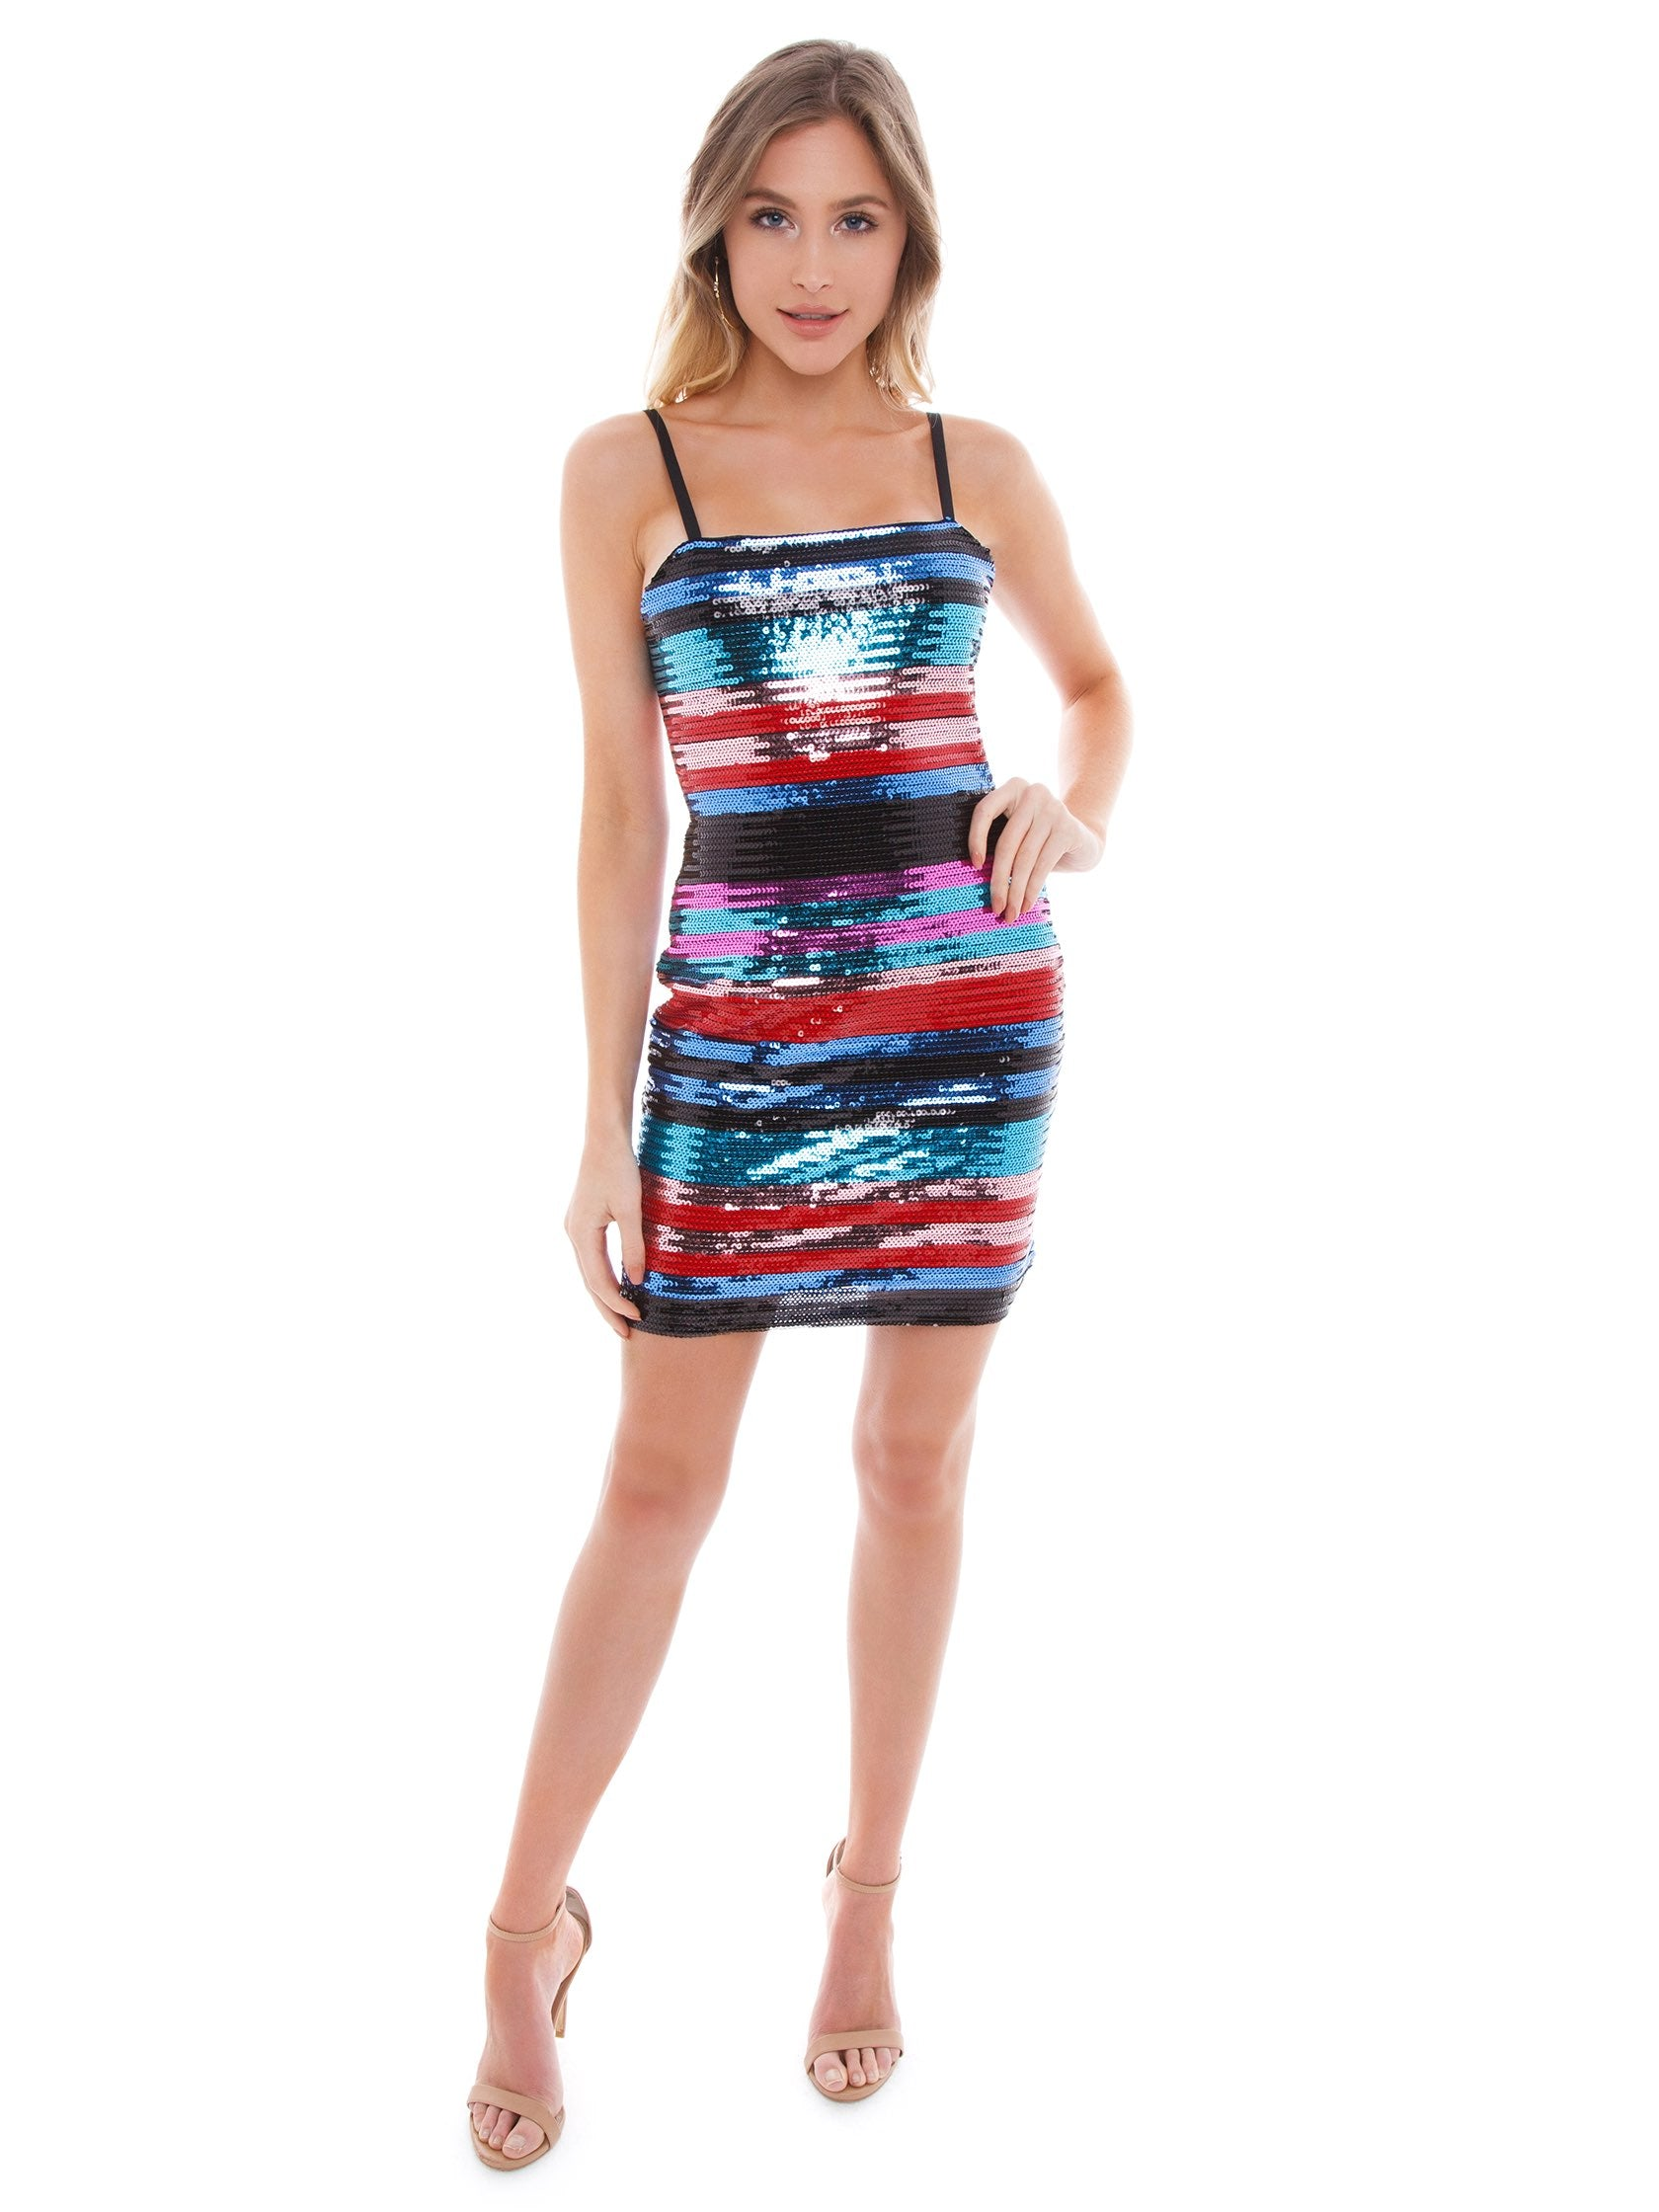 Girl outfit in a dress rental from WAYF called Manfi Stripe Sequin Dress